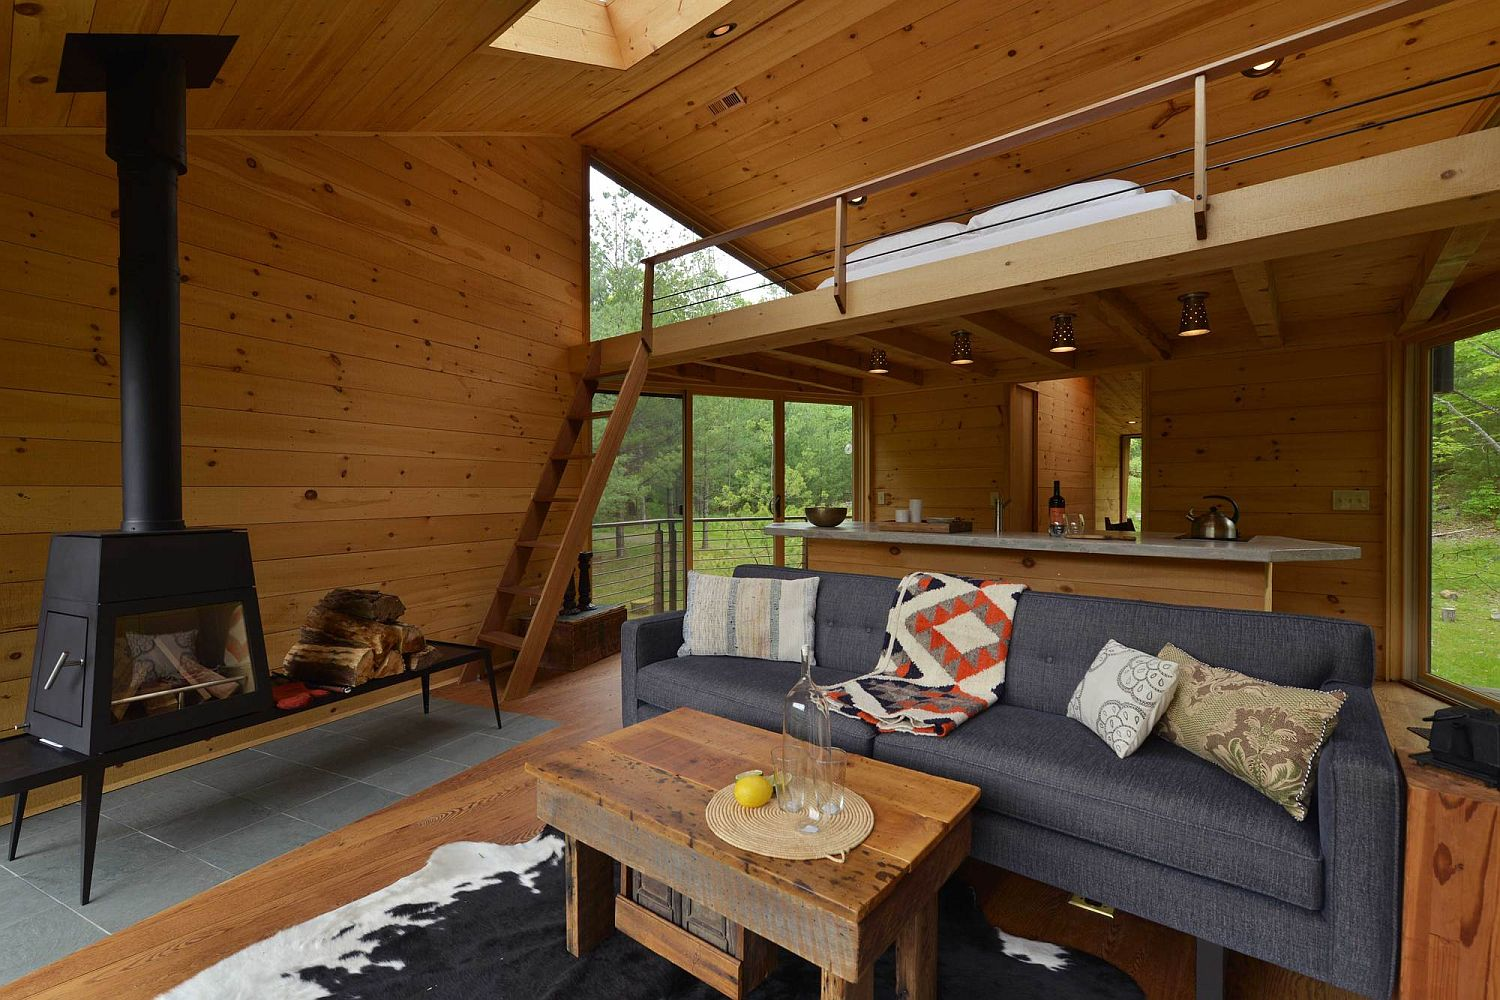 Lounge and loft level bedroom of the cabin in woods